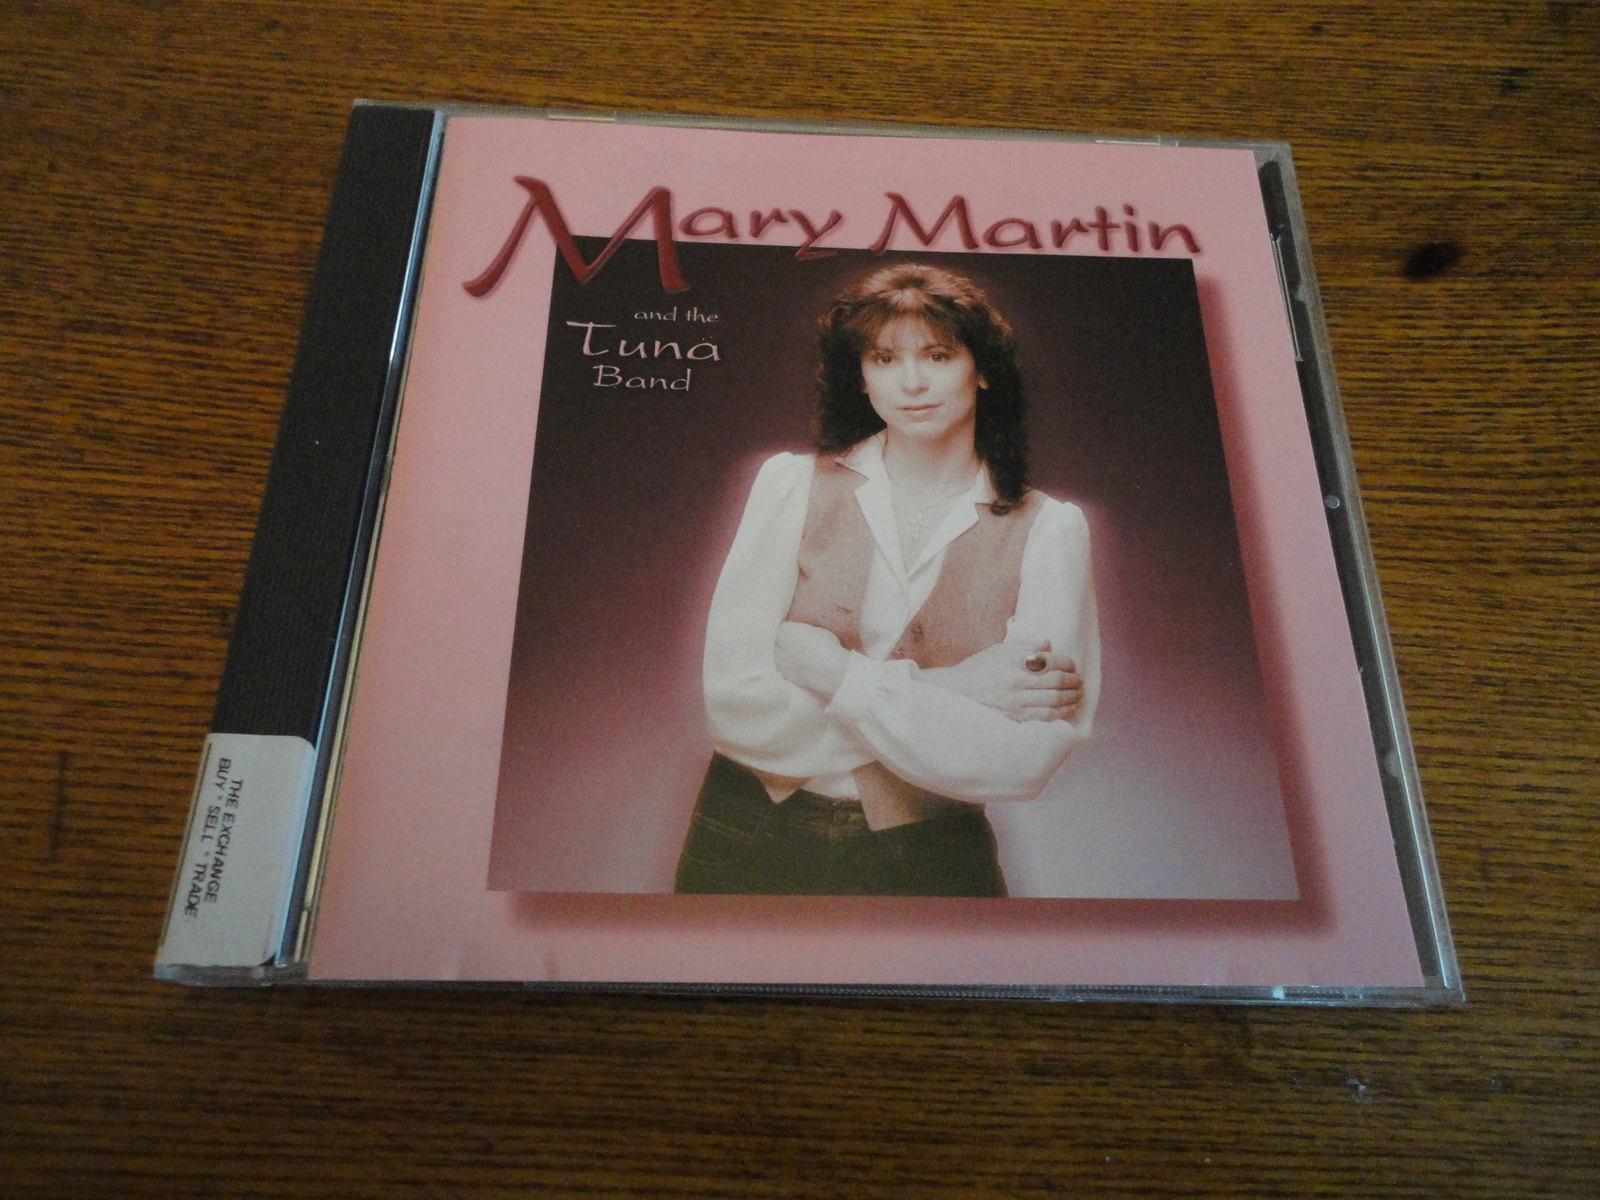 CD Mary Martin and the Tuna Band s/t classic Cleveland blues jazz reissue 2002